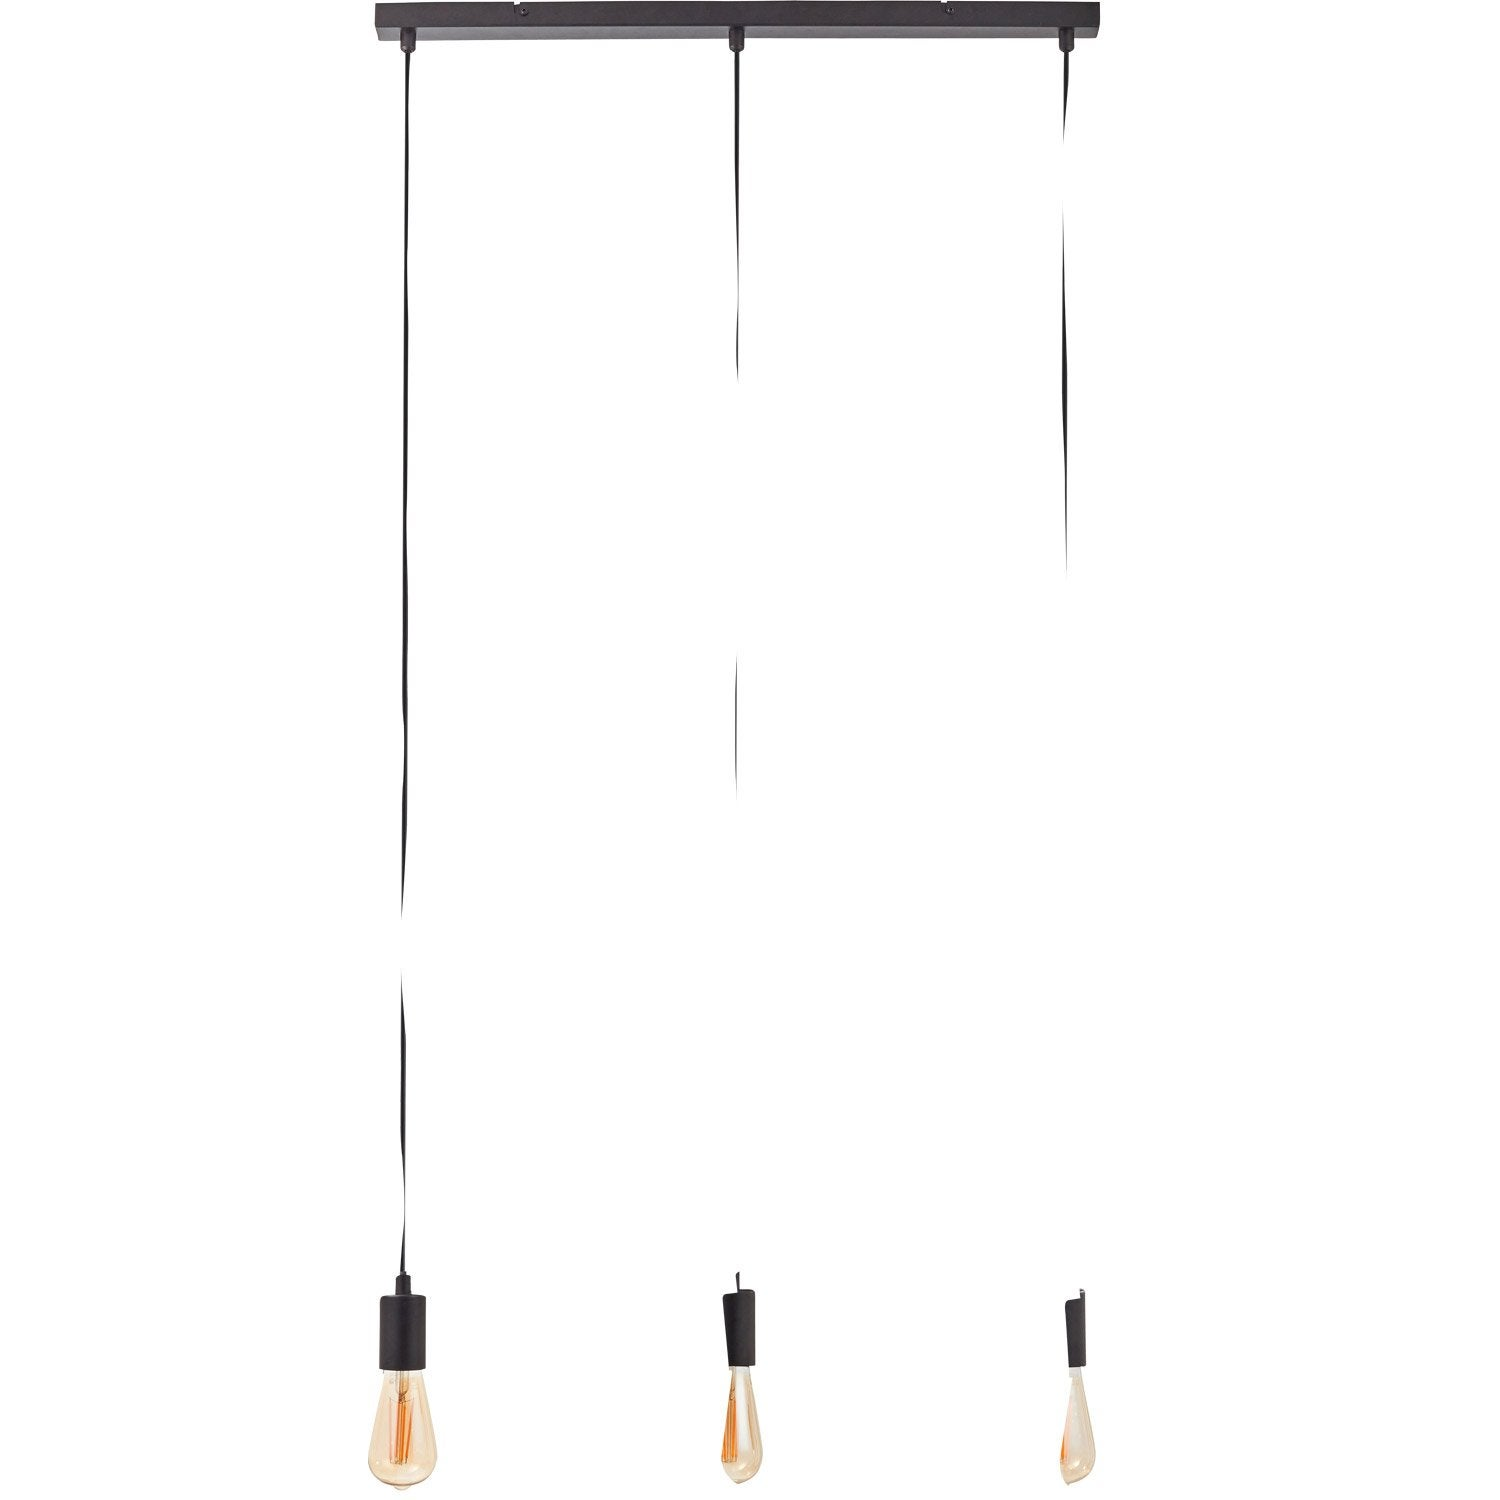 Suspension e27 scandinave sky m tal noir 3 x 60 w markslojd leroy merlin - Suspensions leroy merlin ...